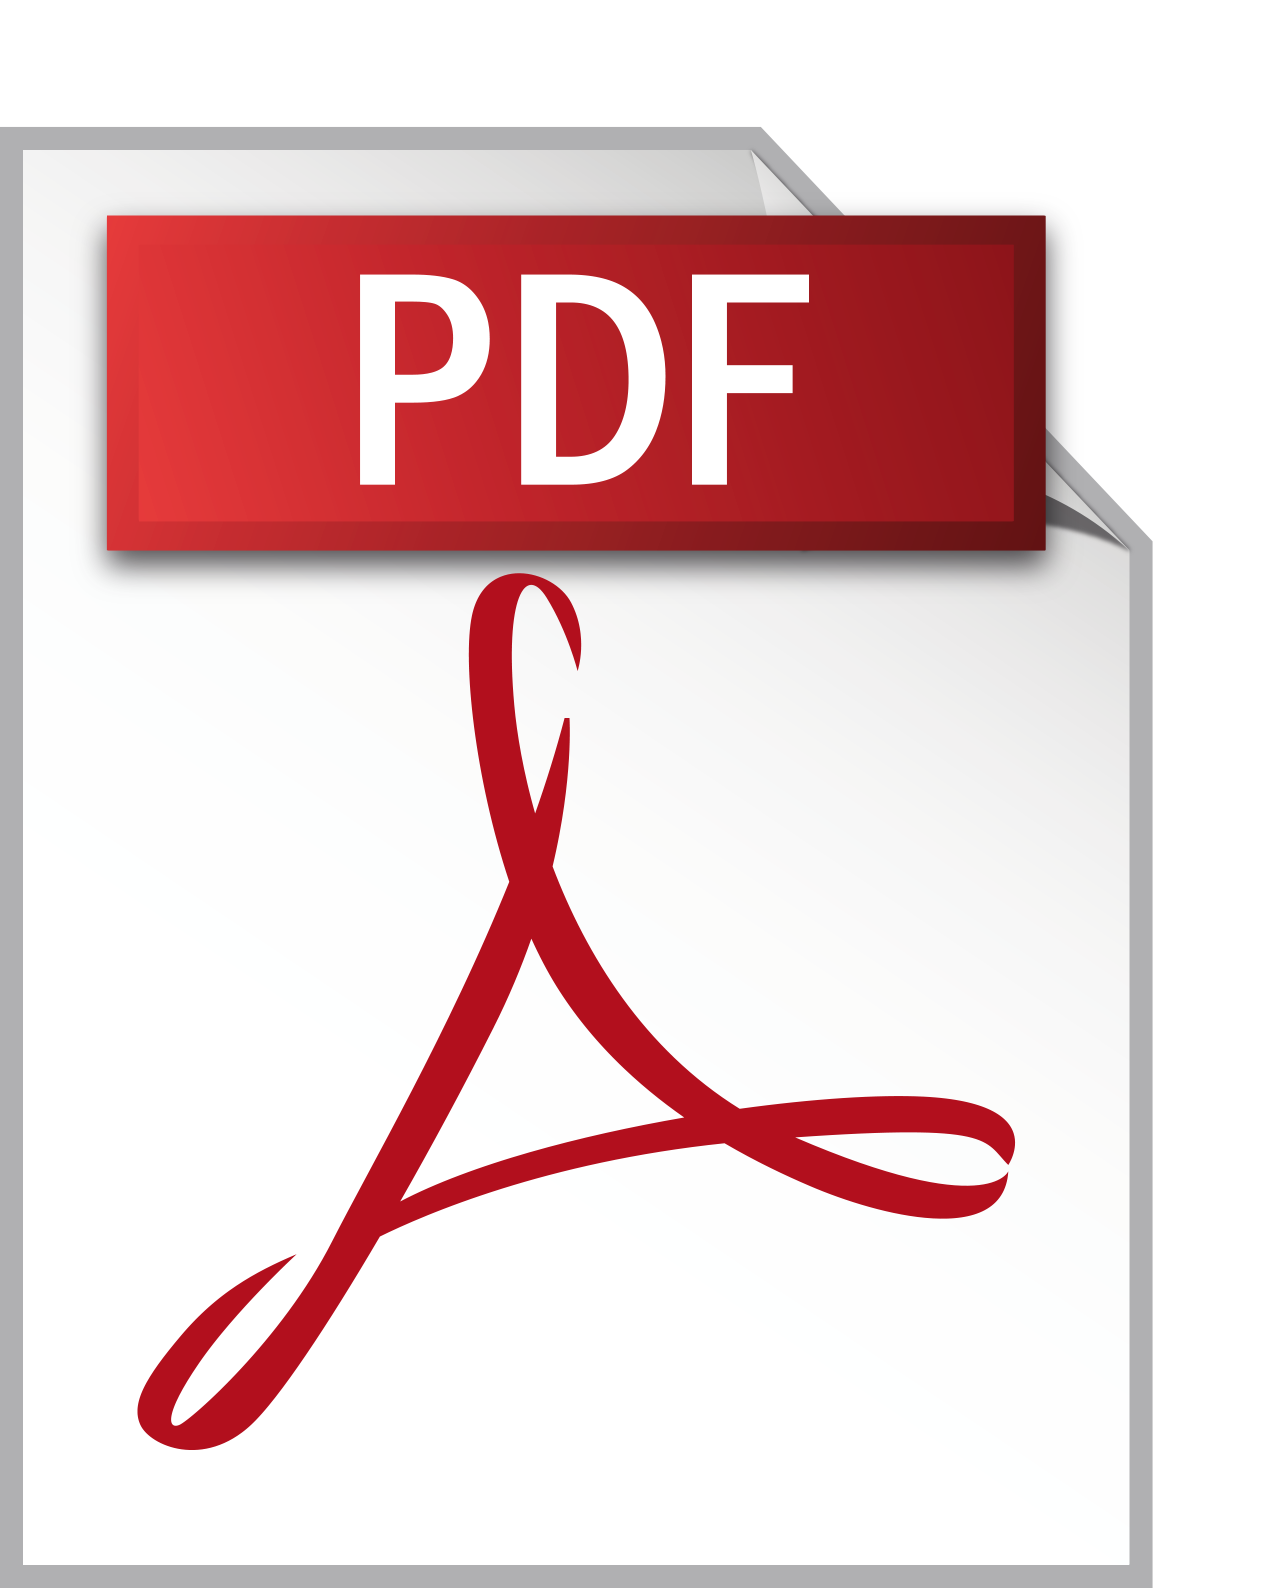 http://www.ecc.ie/mywp/wp-content/uploads/2016/10/icon-pdf-2.png